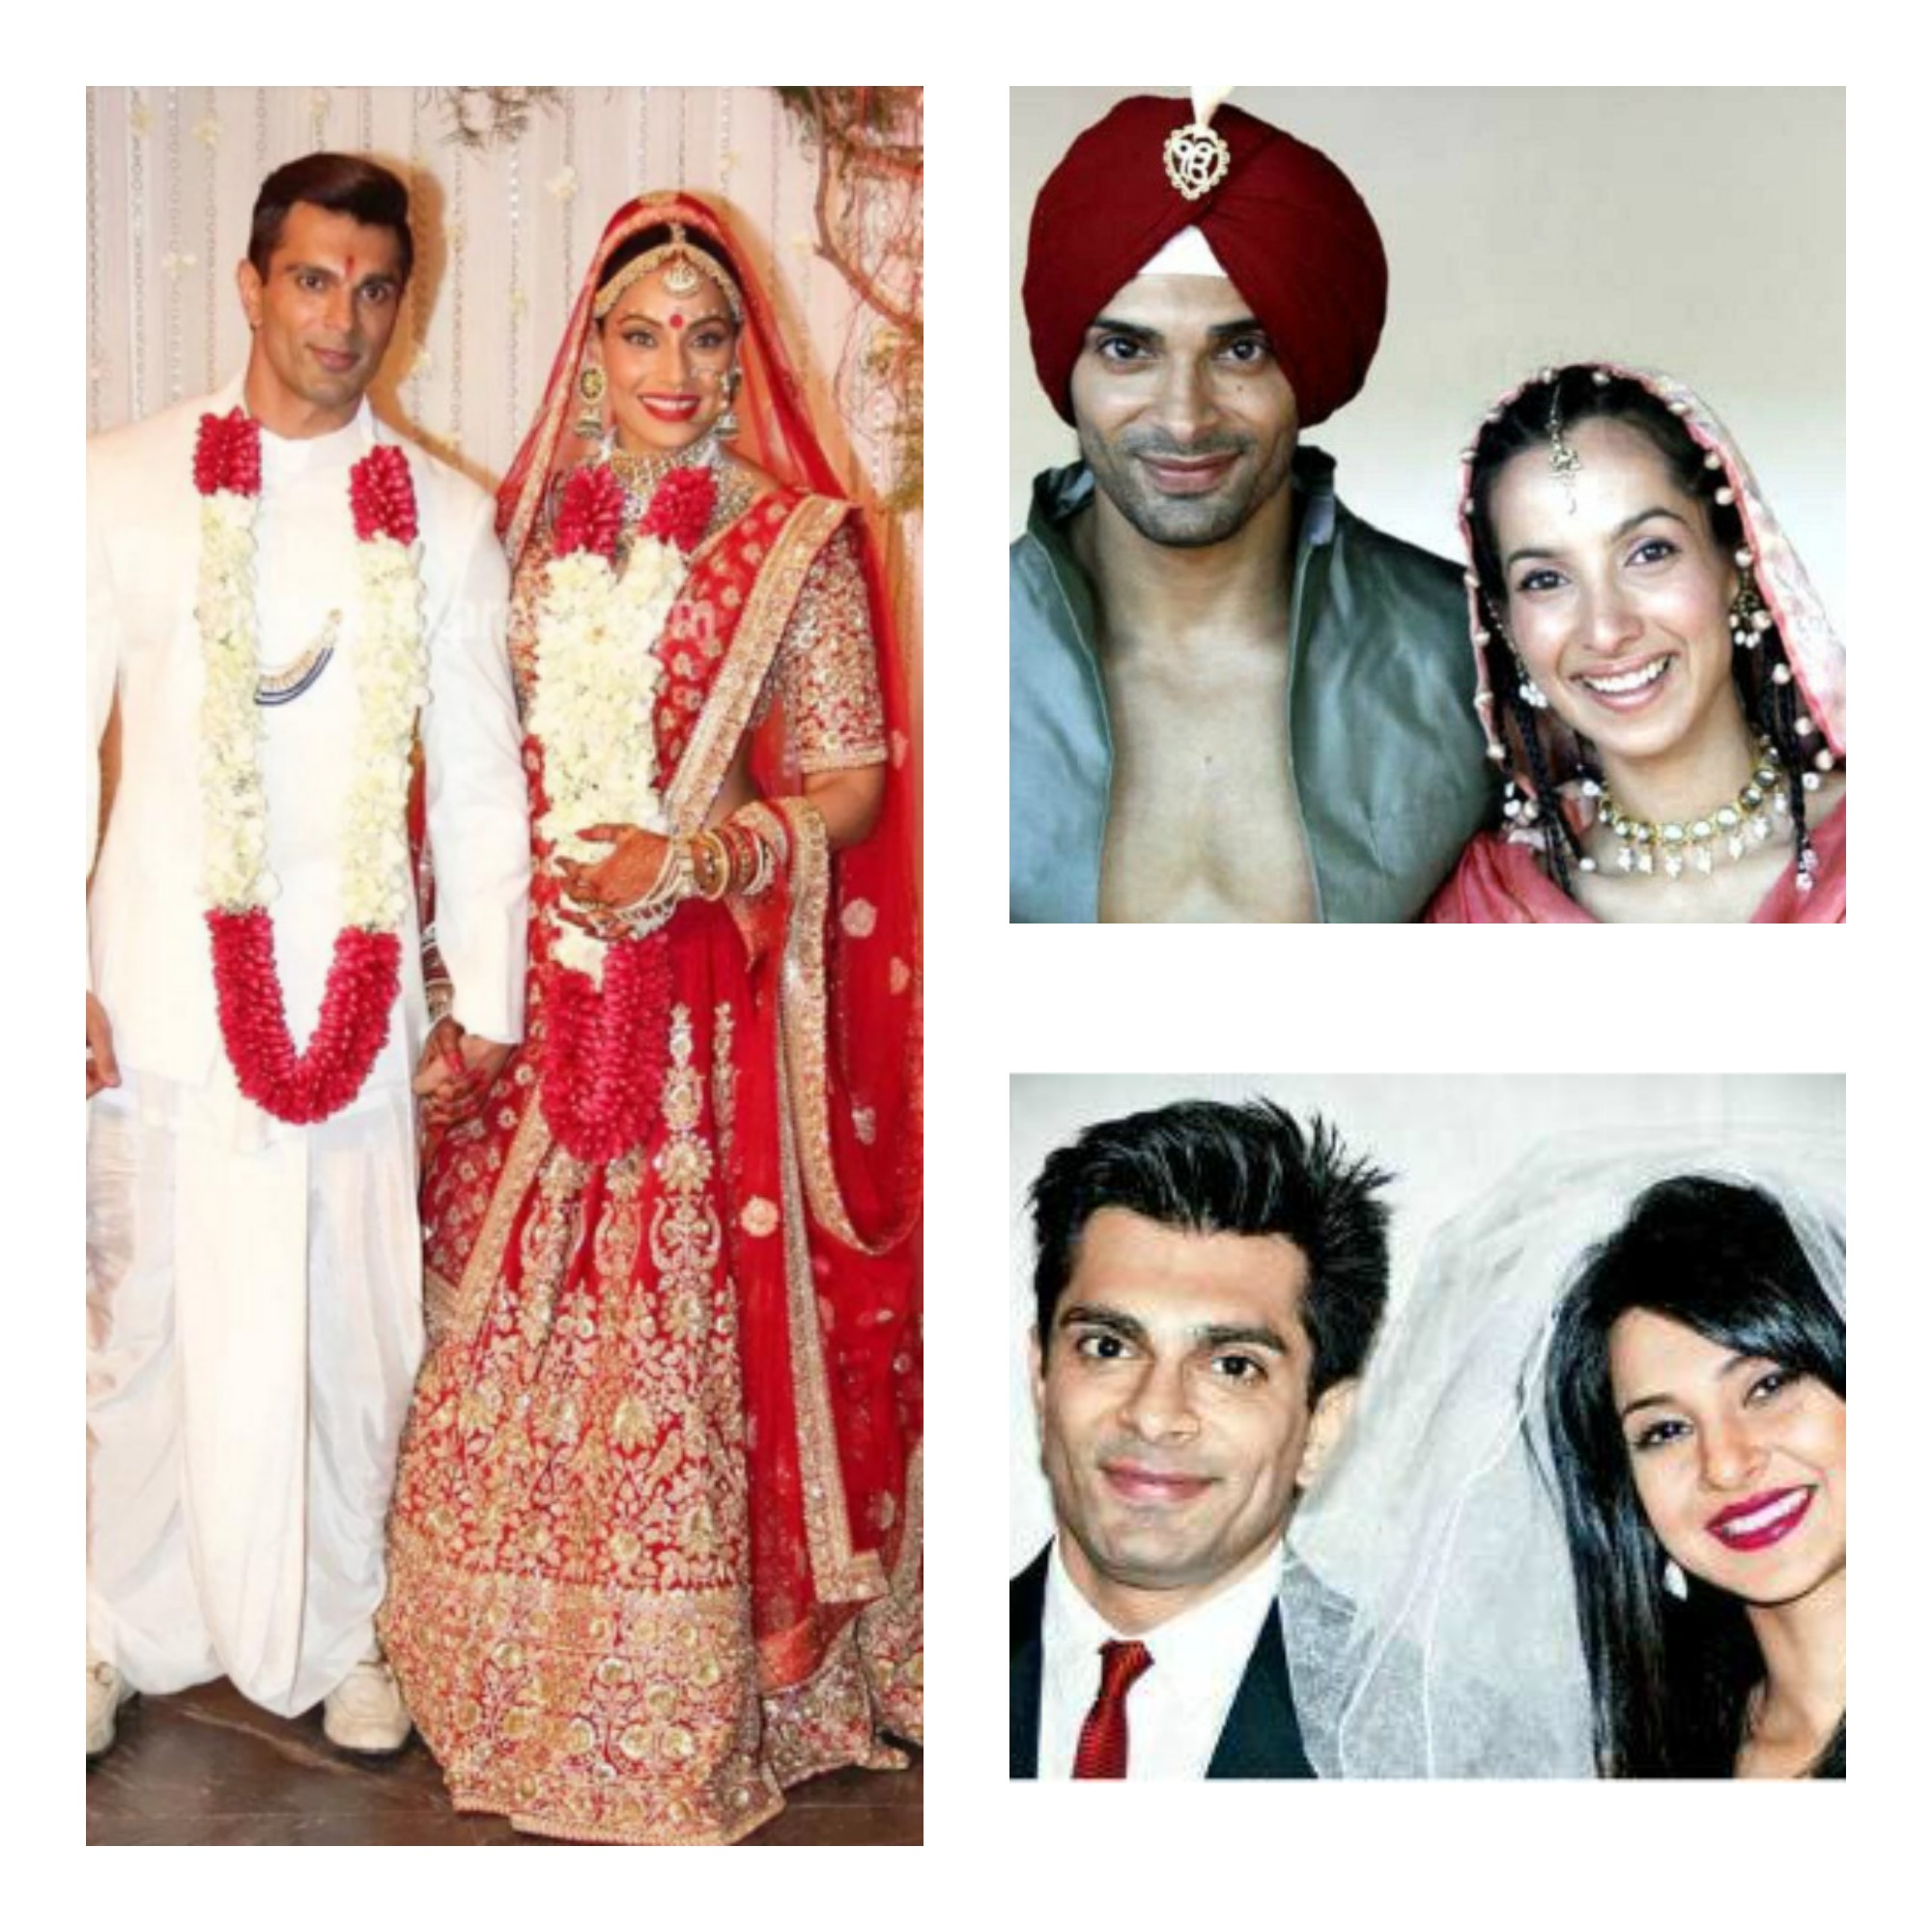 Karan Singh Grovers Ex Wives Jennifer And Shraddha Comment On Actors Marriage To Bipasha Basu